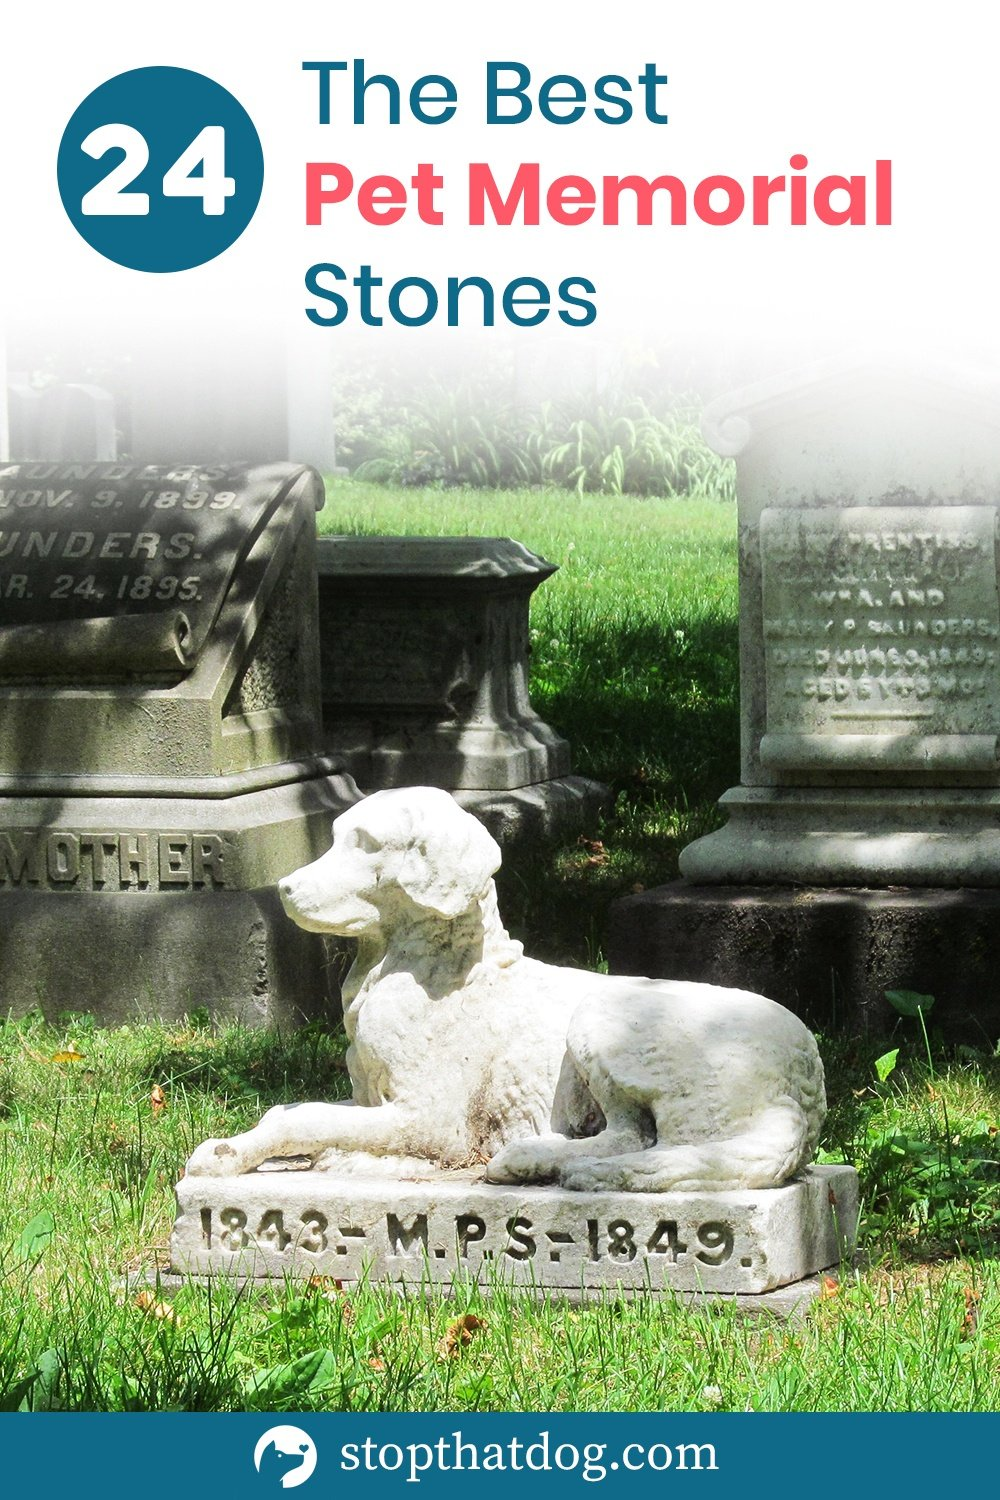 A pet memorial stone is a great way to honor the life of your beloved dog. This guide shows you many of the best pet memorial stones available.